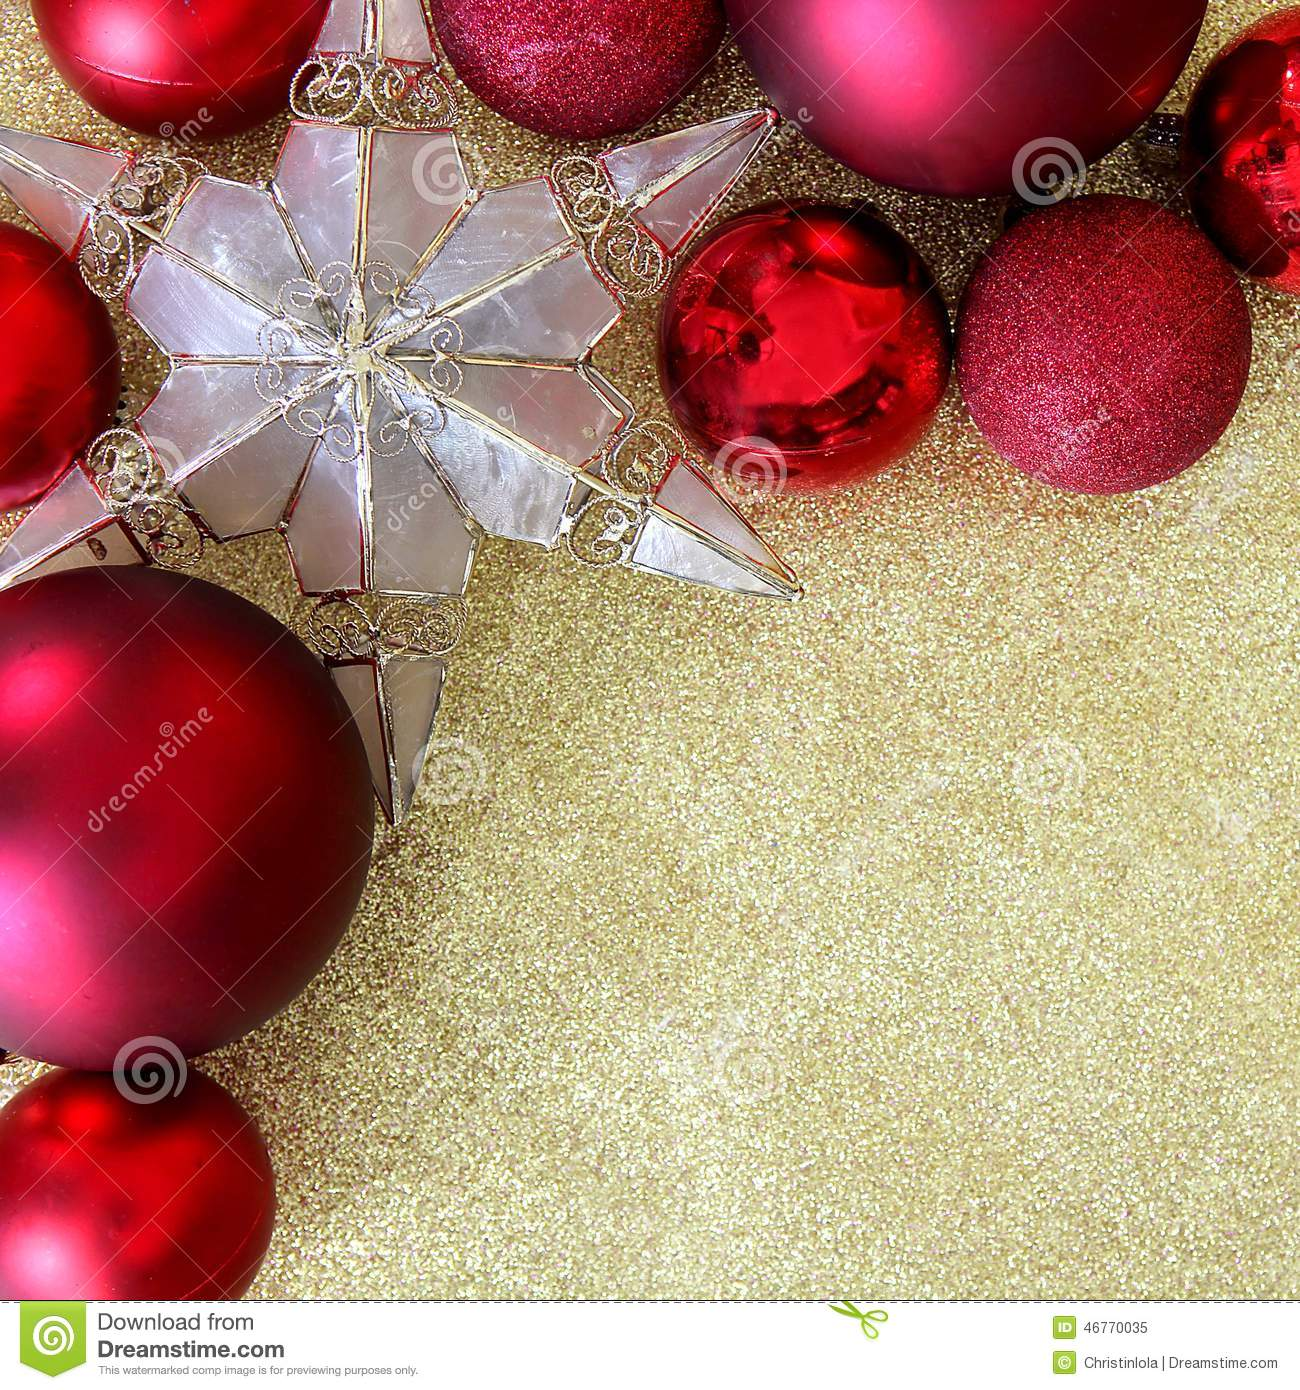 red christmas bulb decorations and a star shaped tree ornament border the corner of a background gold glitter fabric with copy space - Christmas Bulb Decorations